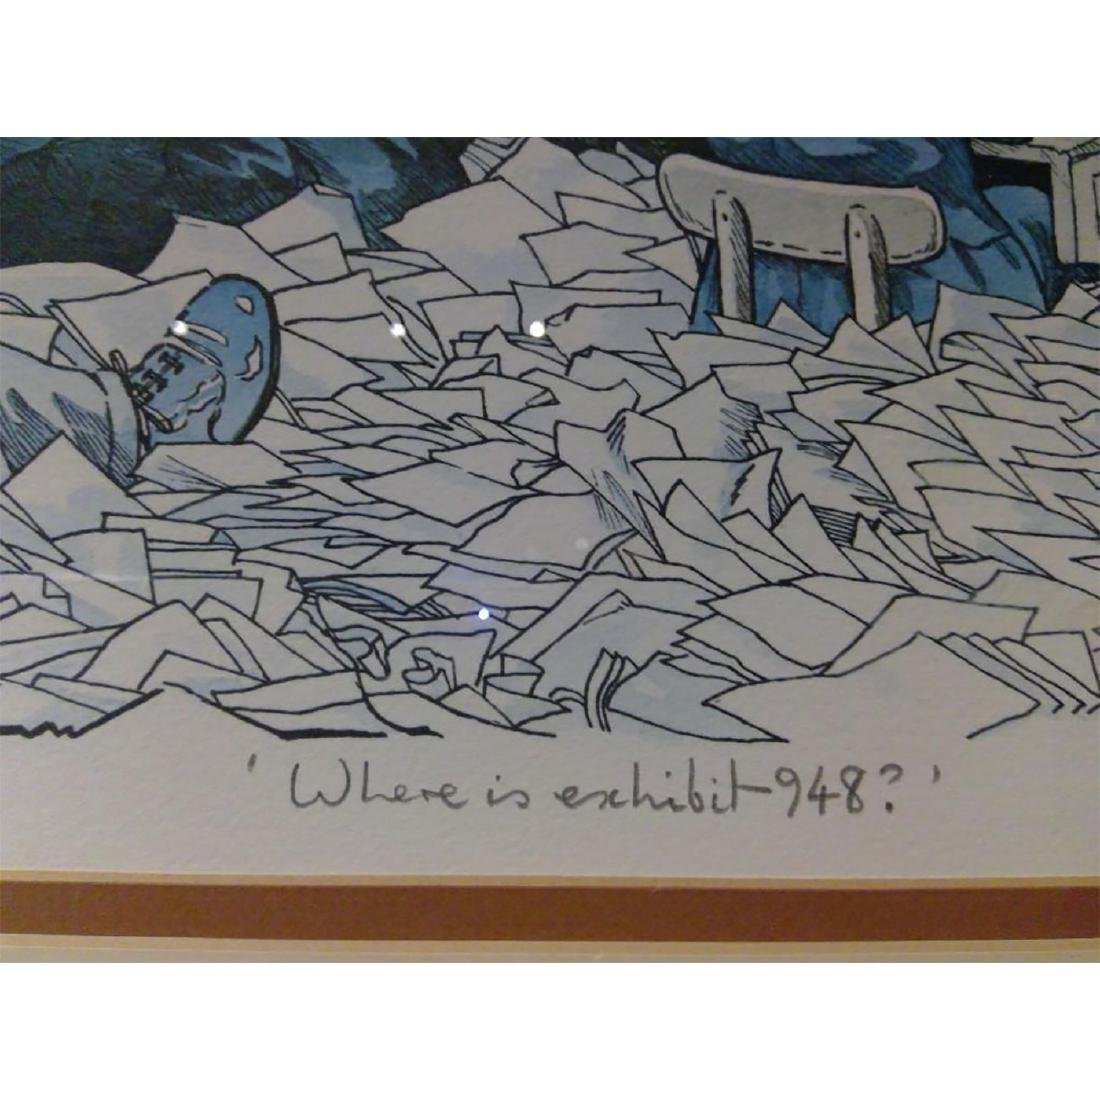 SET OF 2 SIGNED BOB FARNDON LIMITED EDITION LITHOGRAPHS - 9